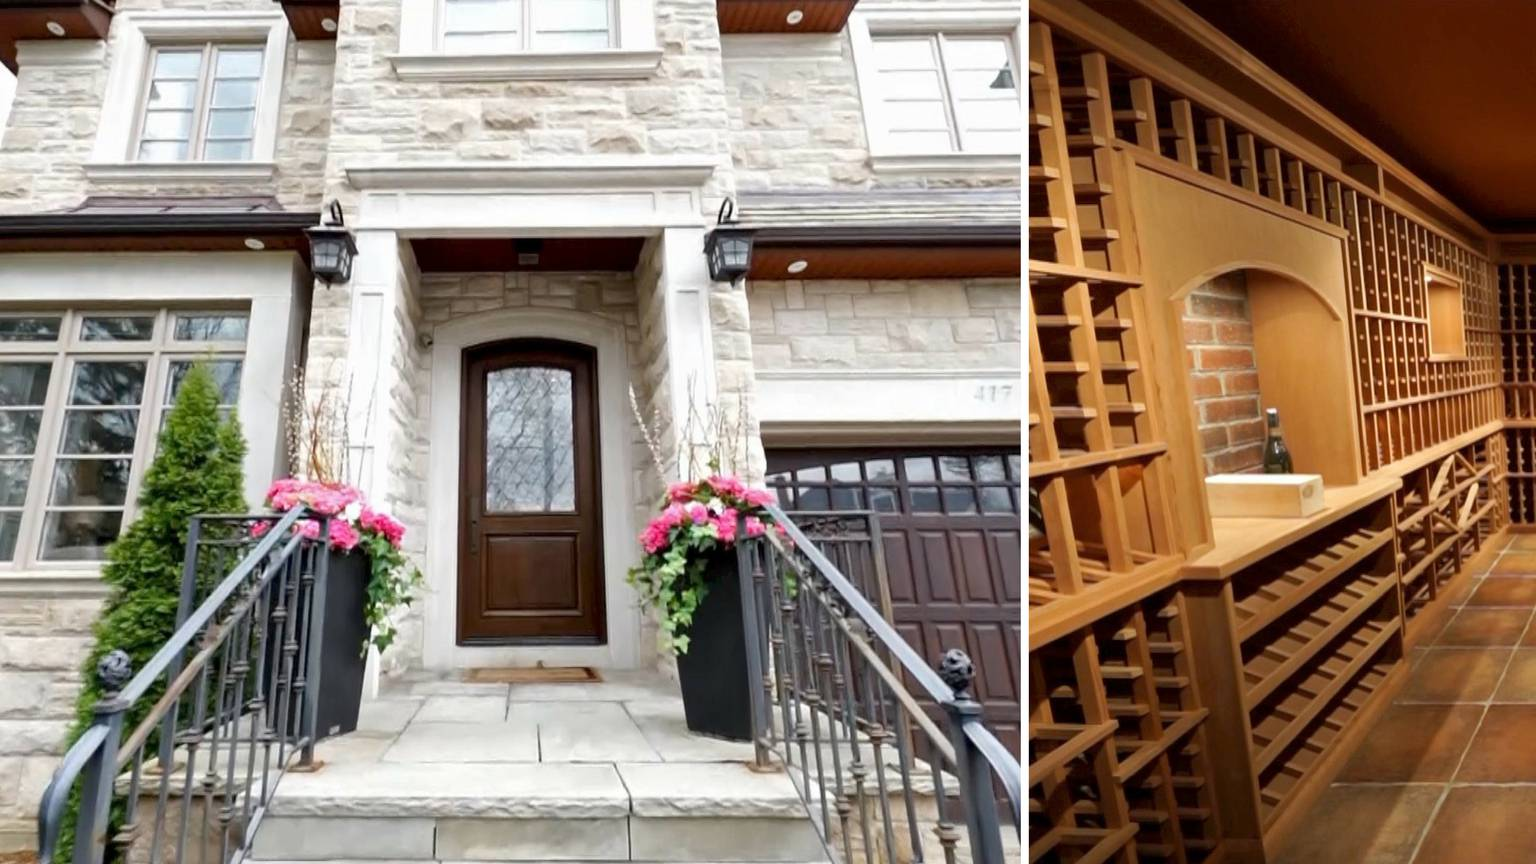 Video Done Deals This Detached Home In Toronto With A